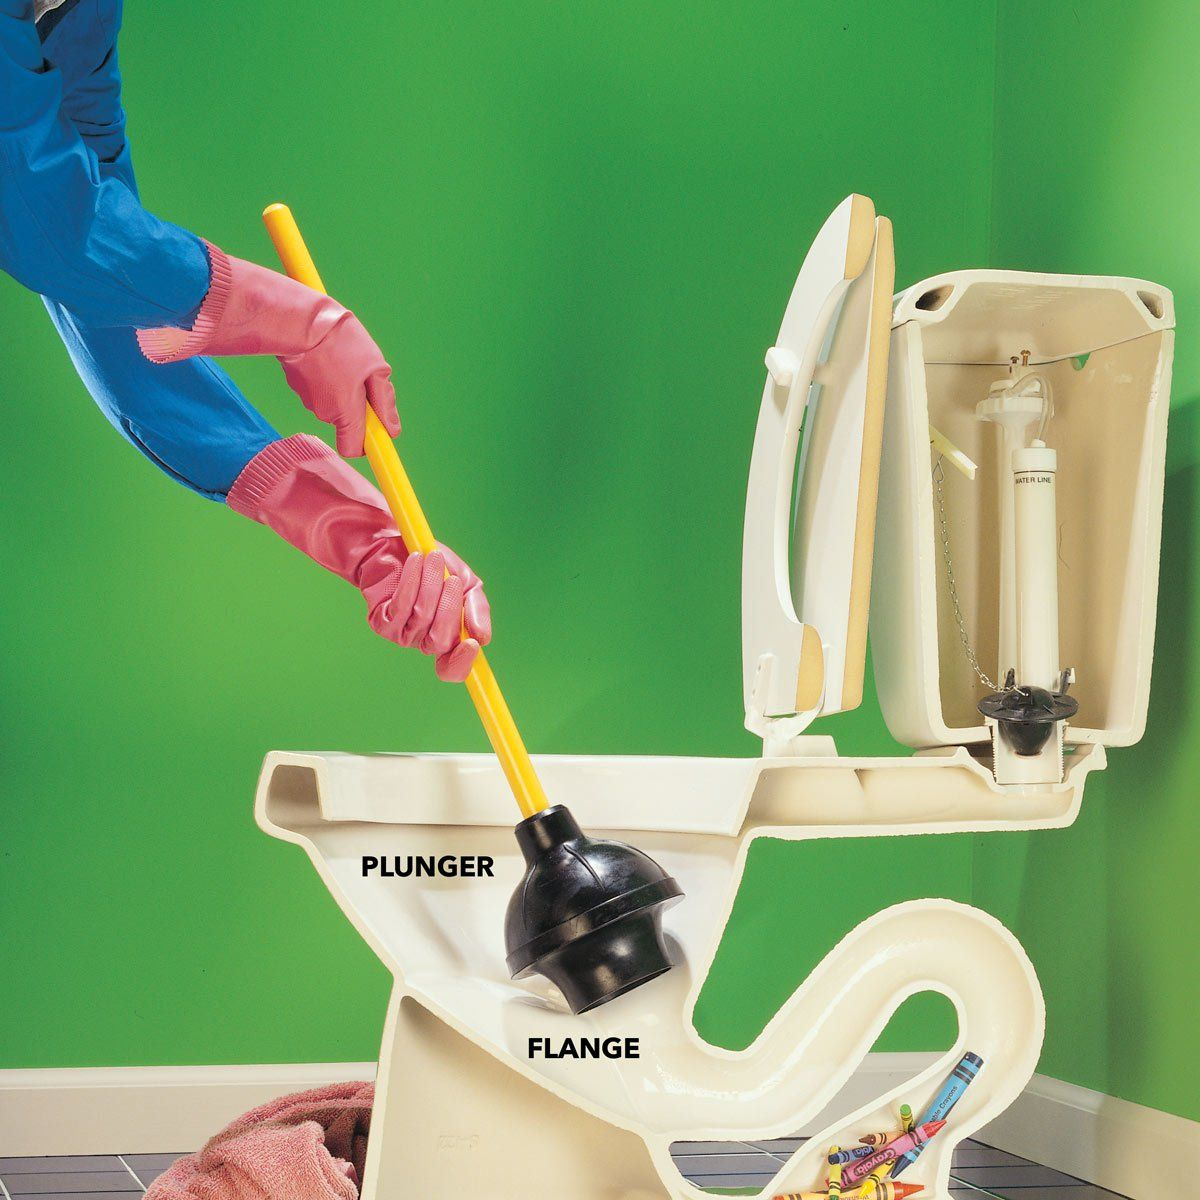 How to Unclog a Toilet How to unclog toilet, Toilet